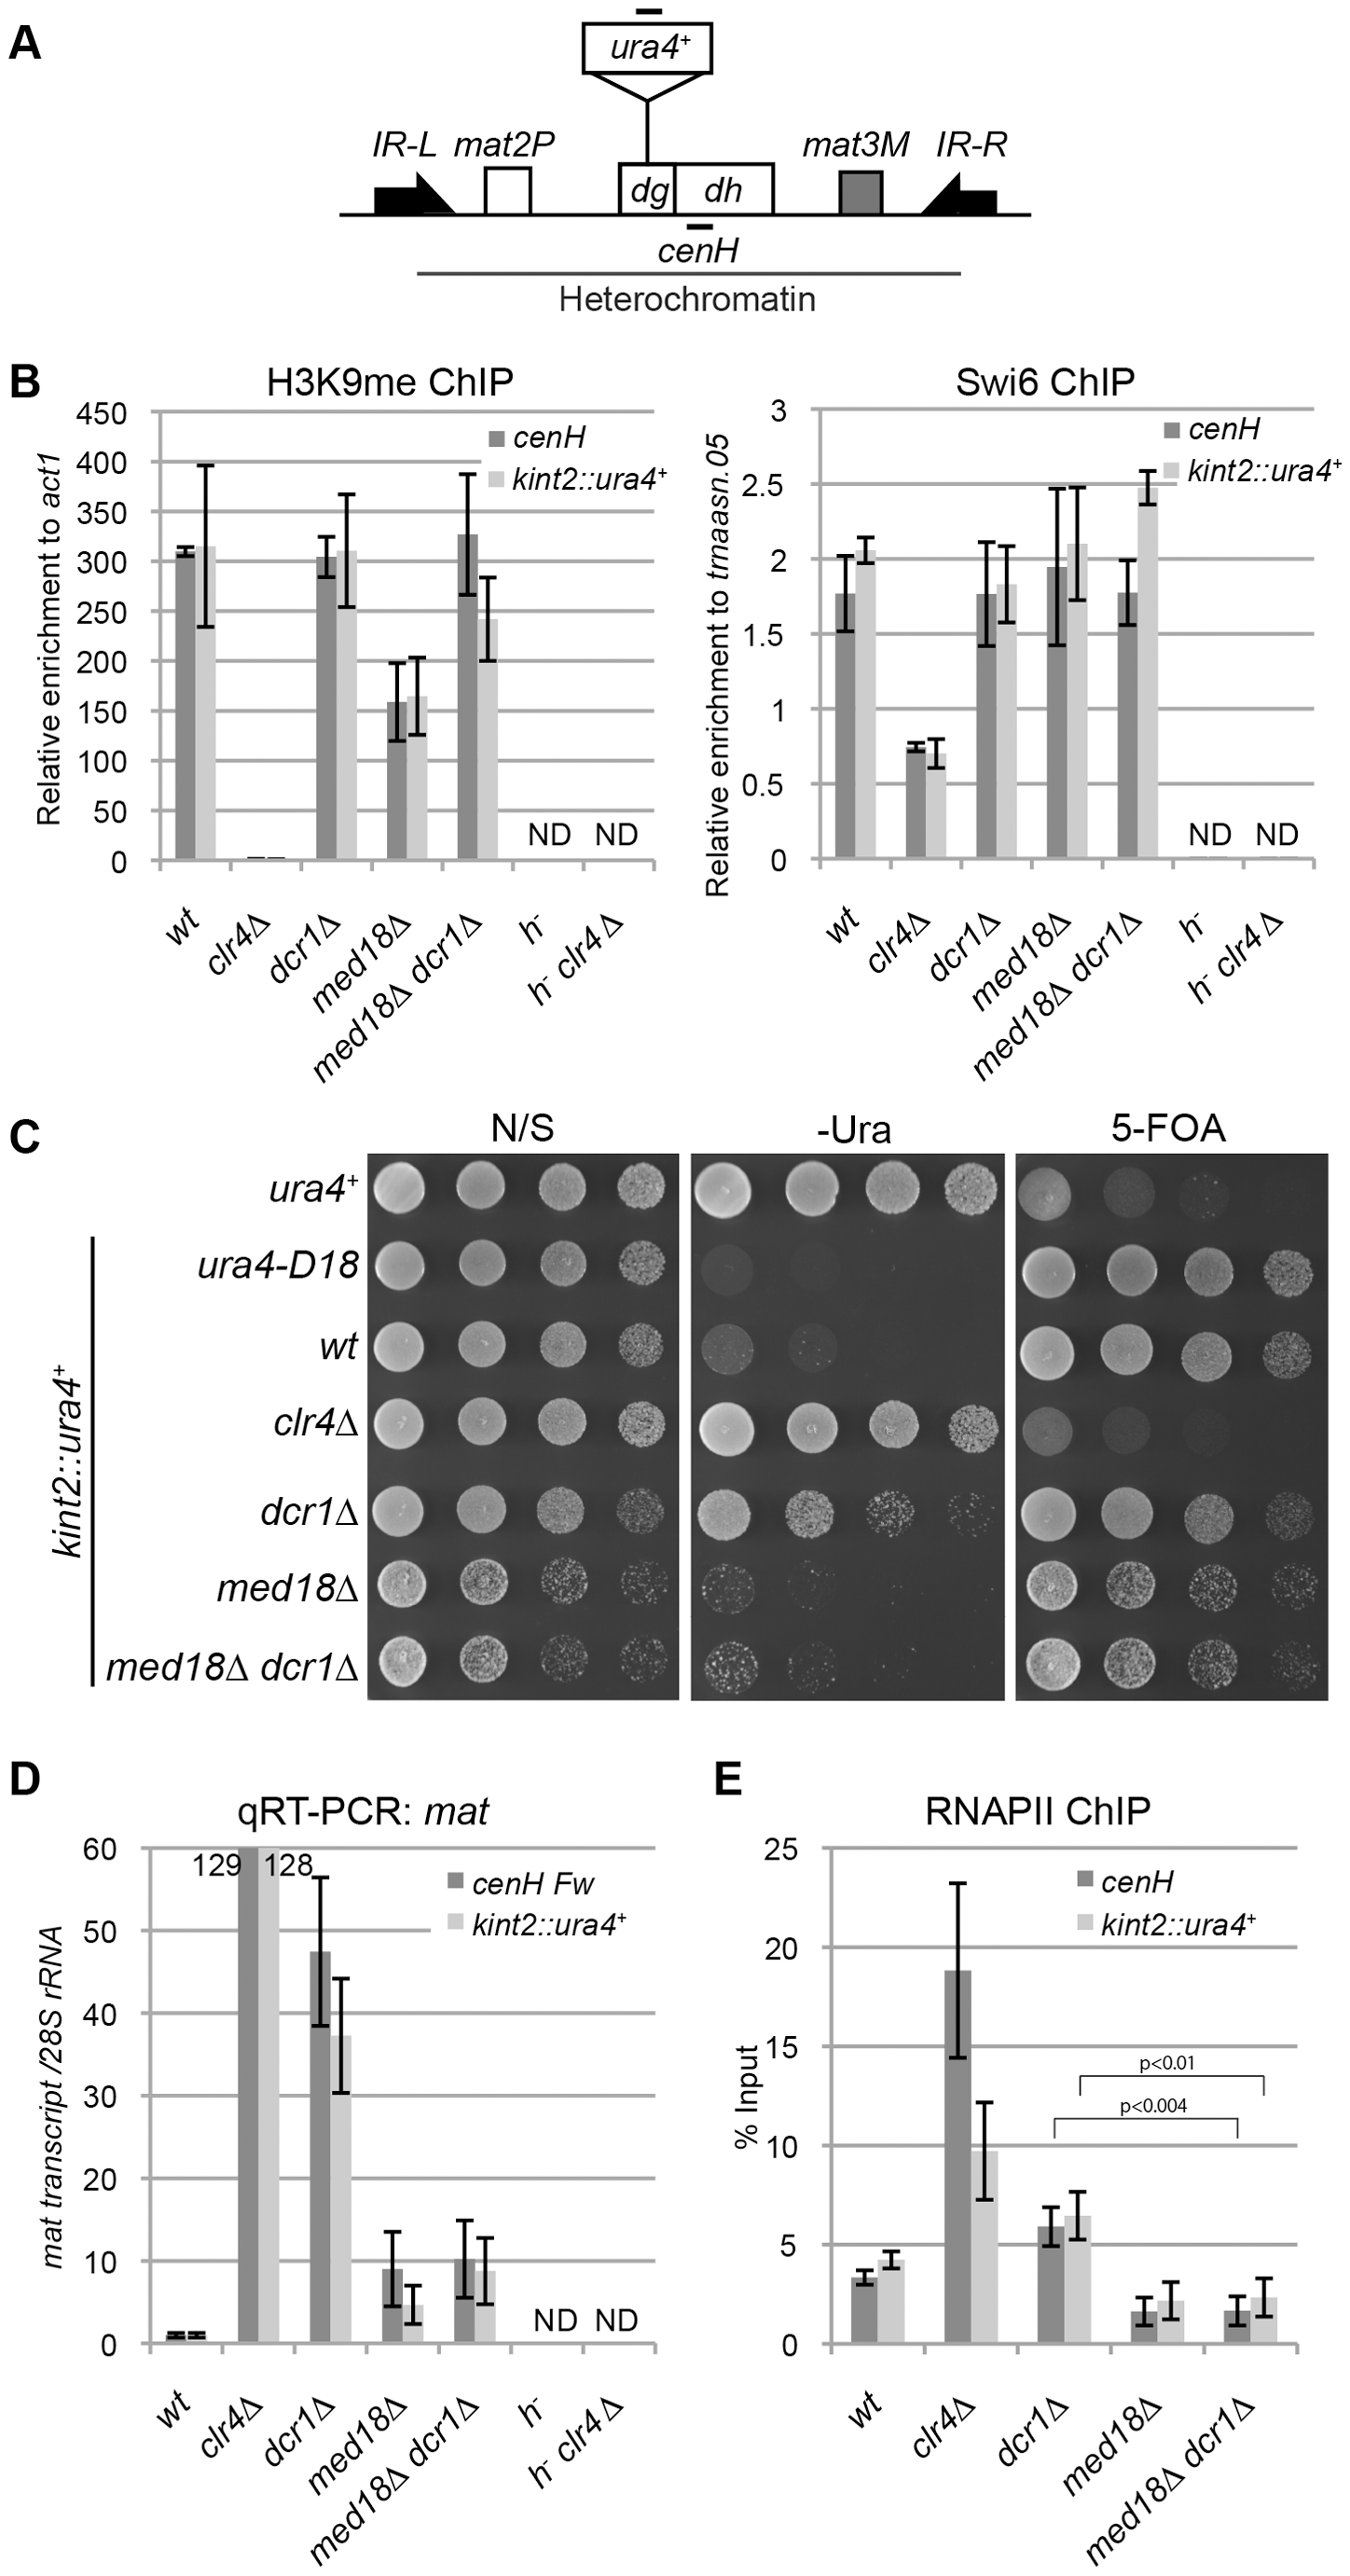 Mediator is required for transcriptional activation in heterochromatin.